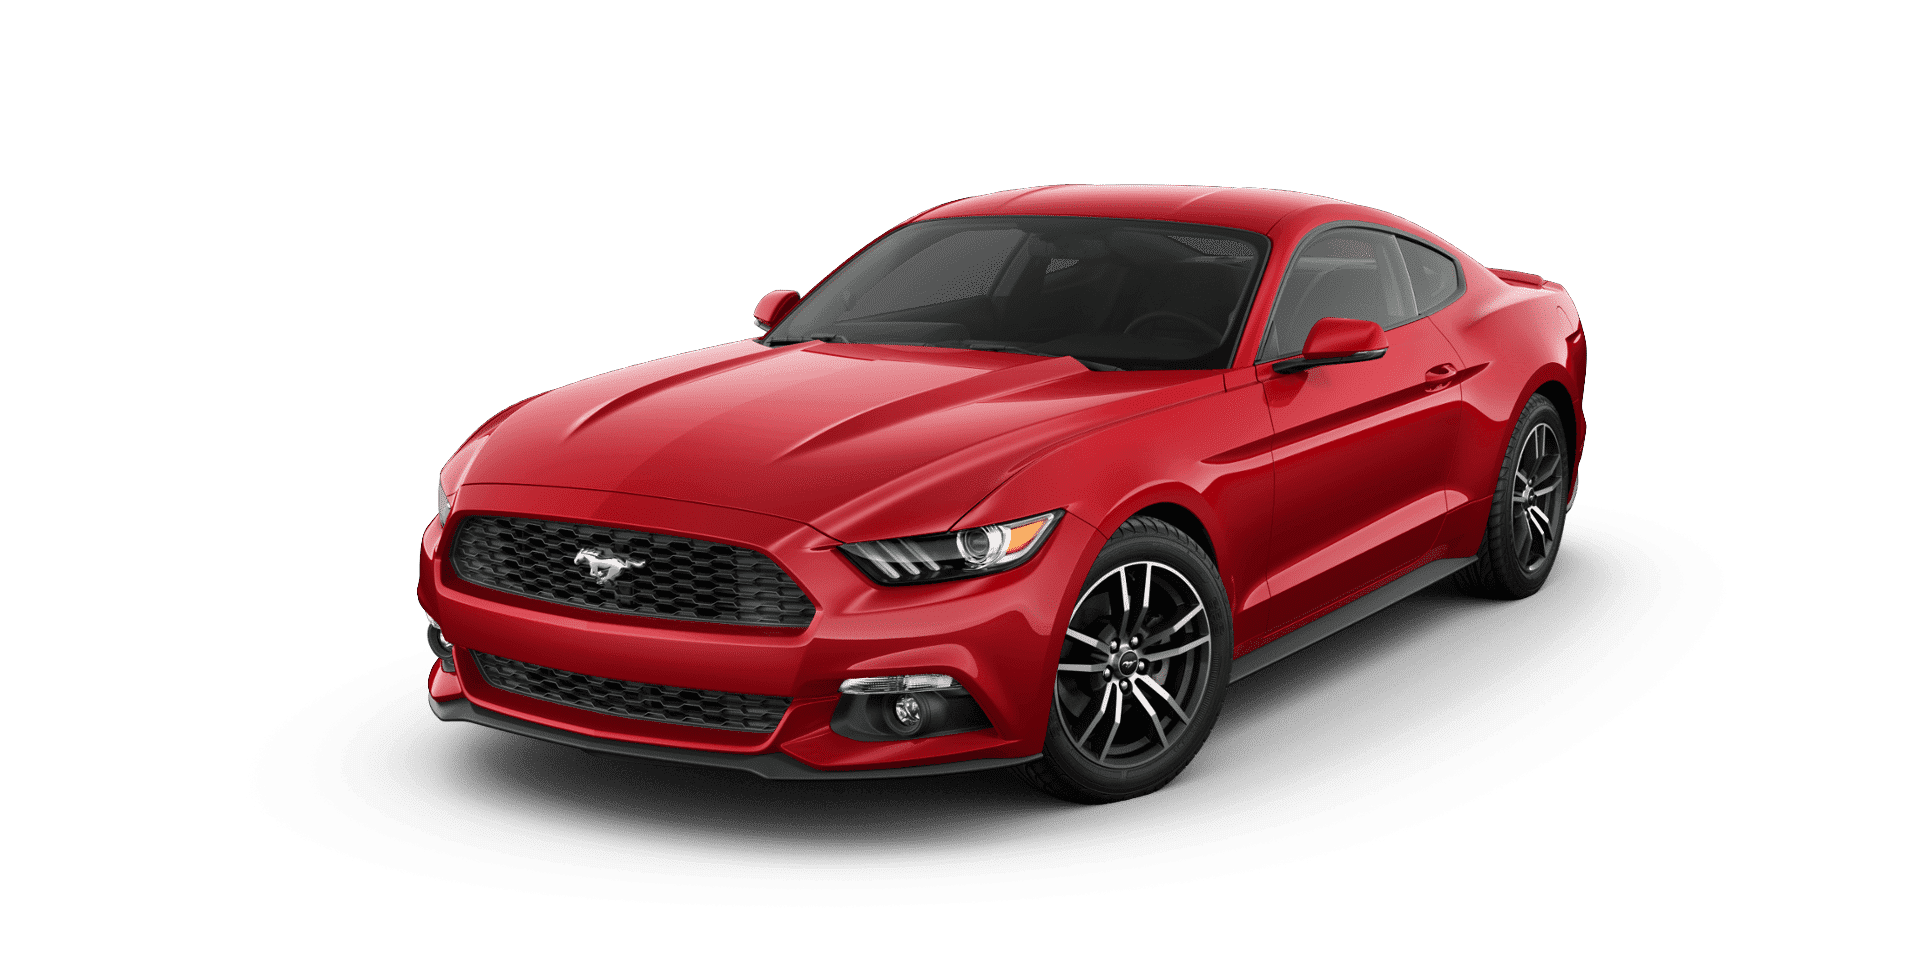 Red Ford Mustang 2018